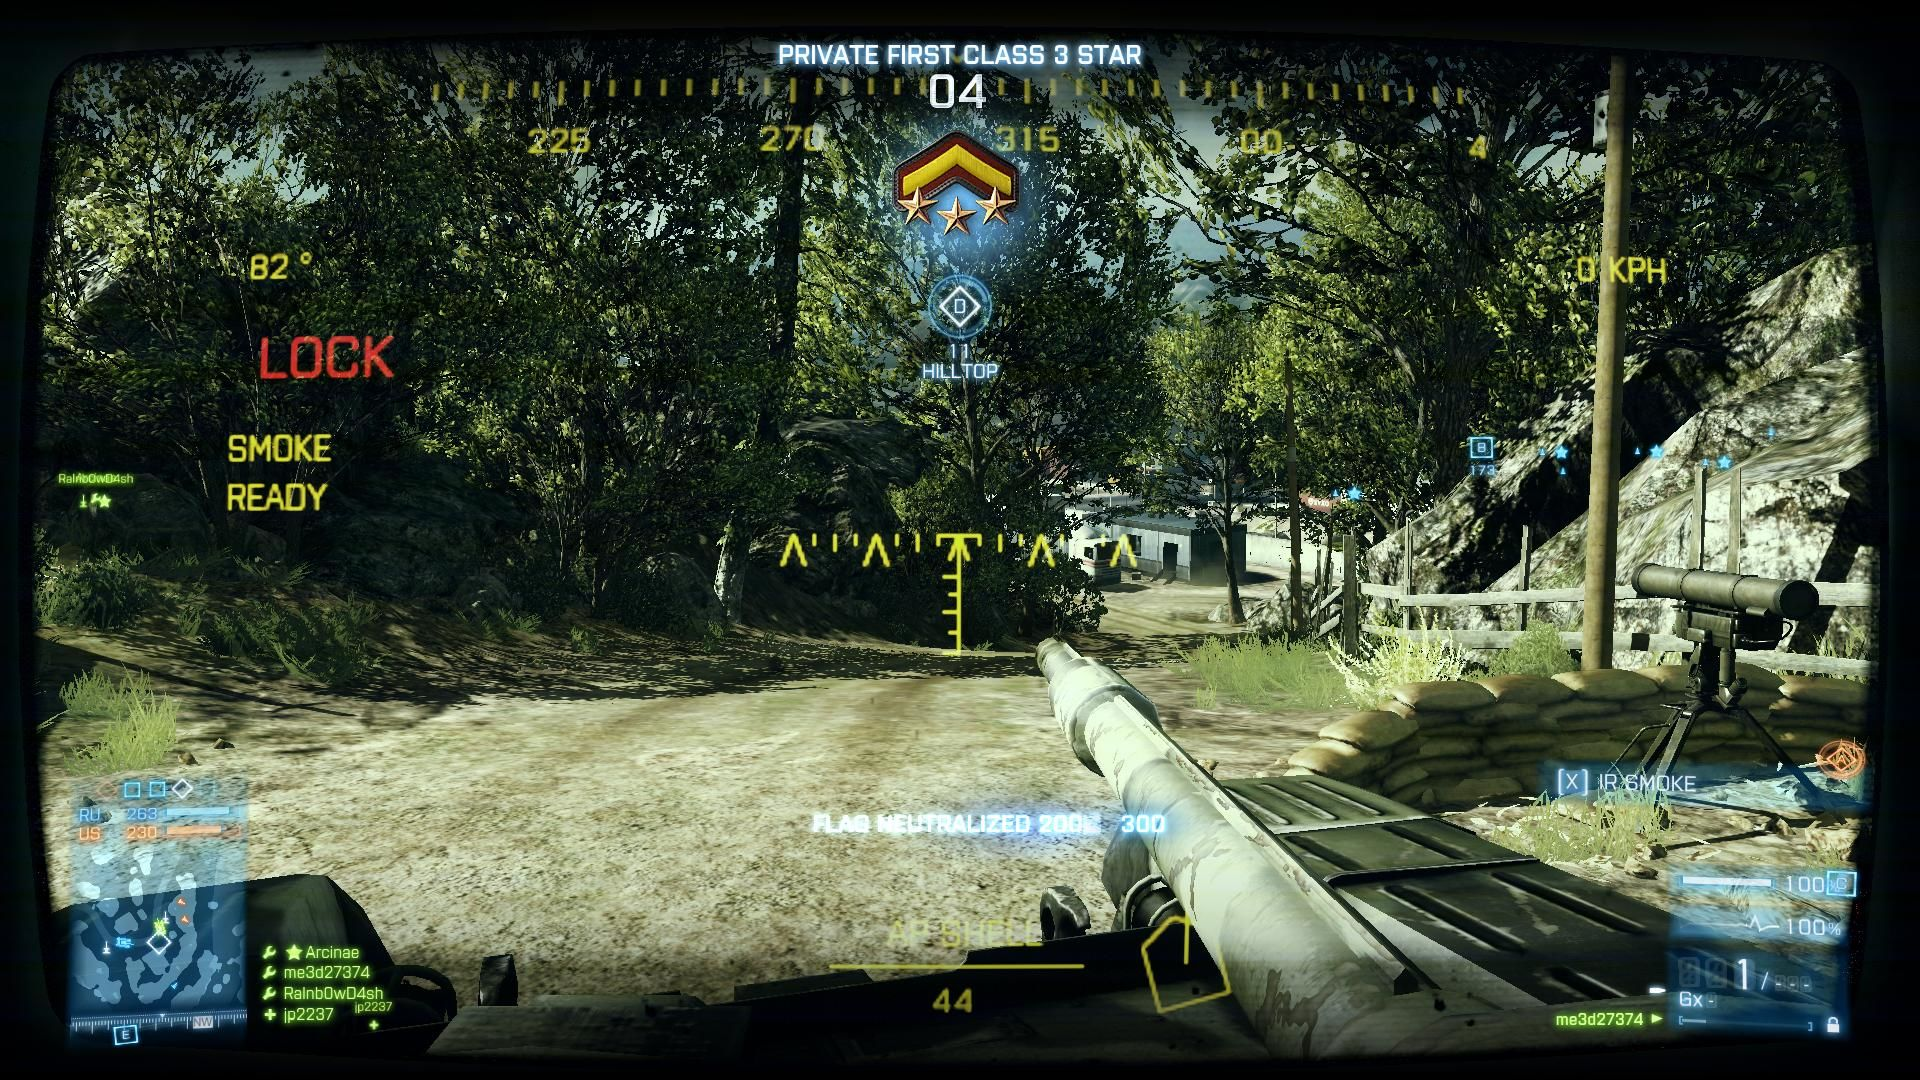 Battlefield 3 Windows Ranking up during mission in game